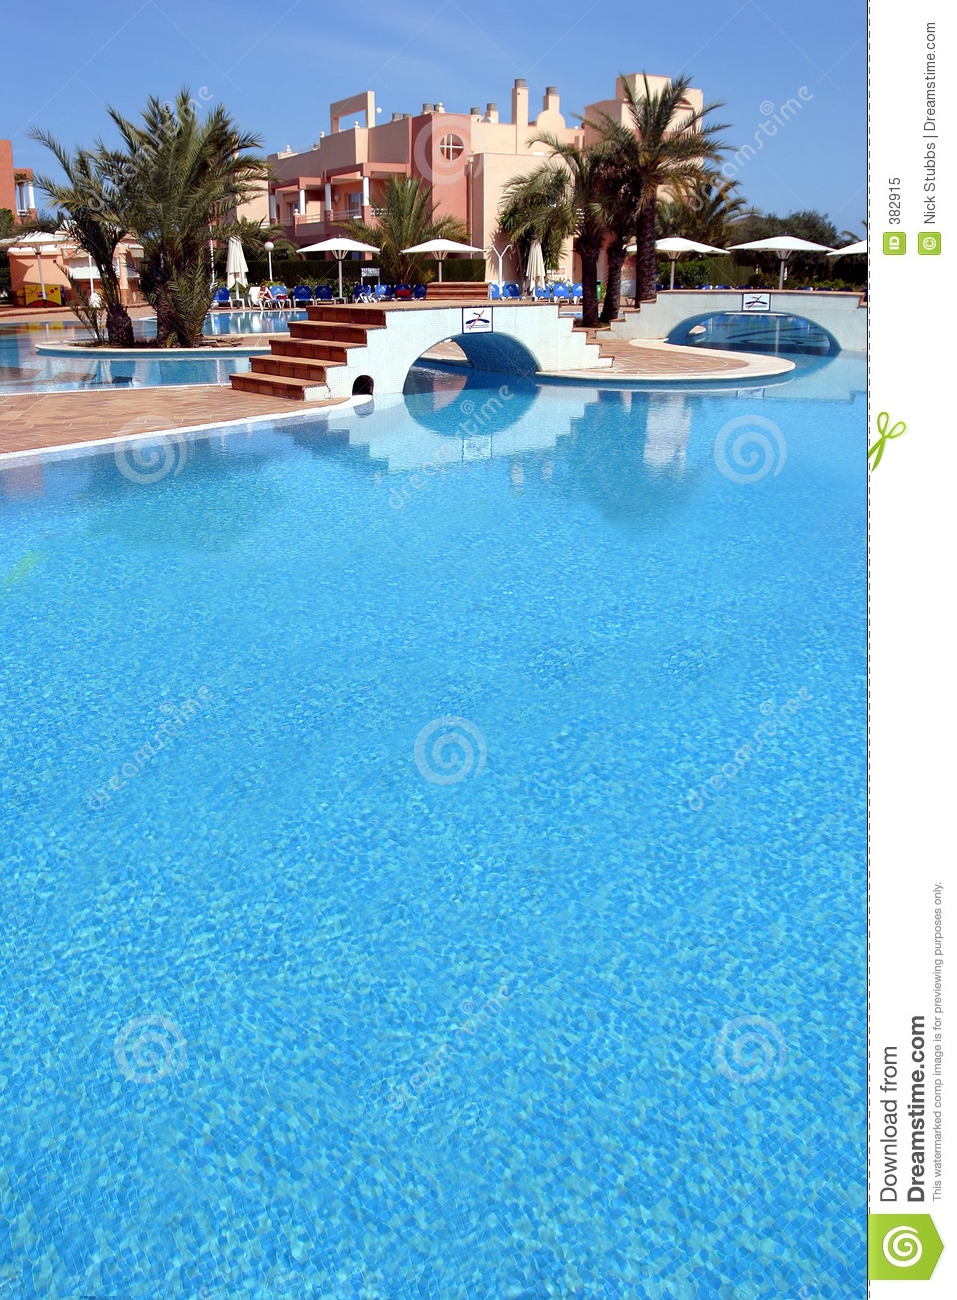 Large Blue Swimming Pool In Luxurious Spanish Complex Royalty Free Stock Photo Image 382915